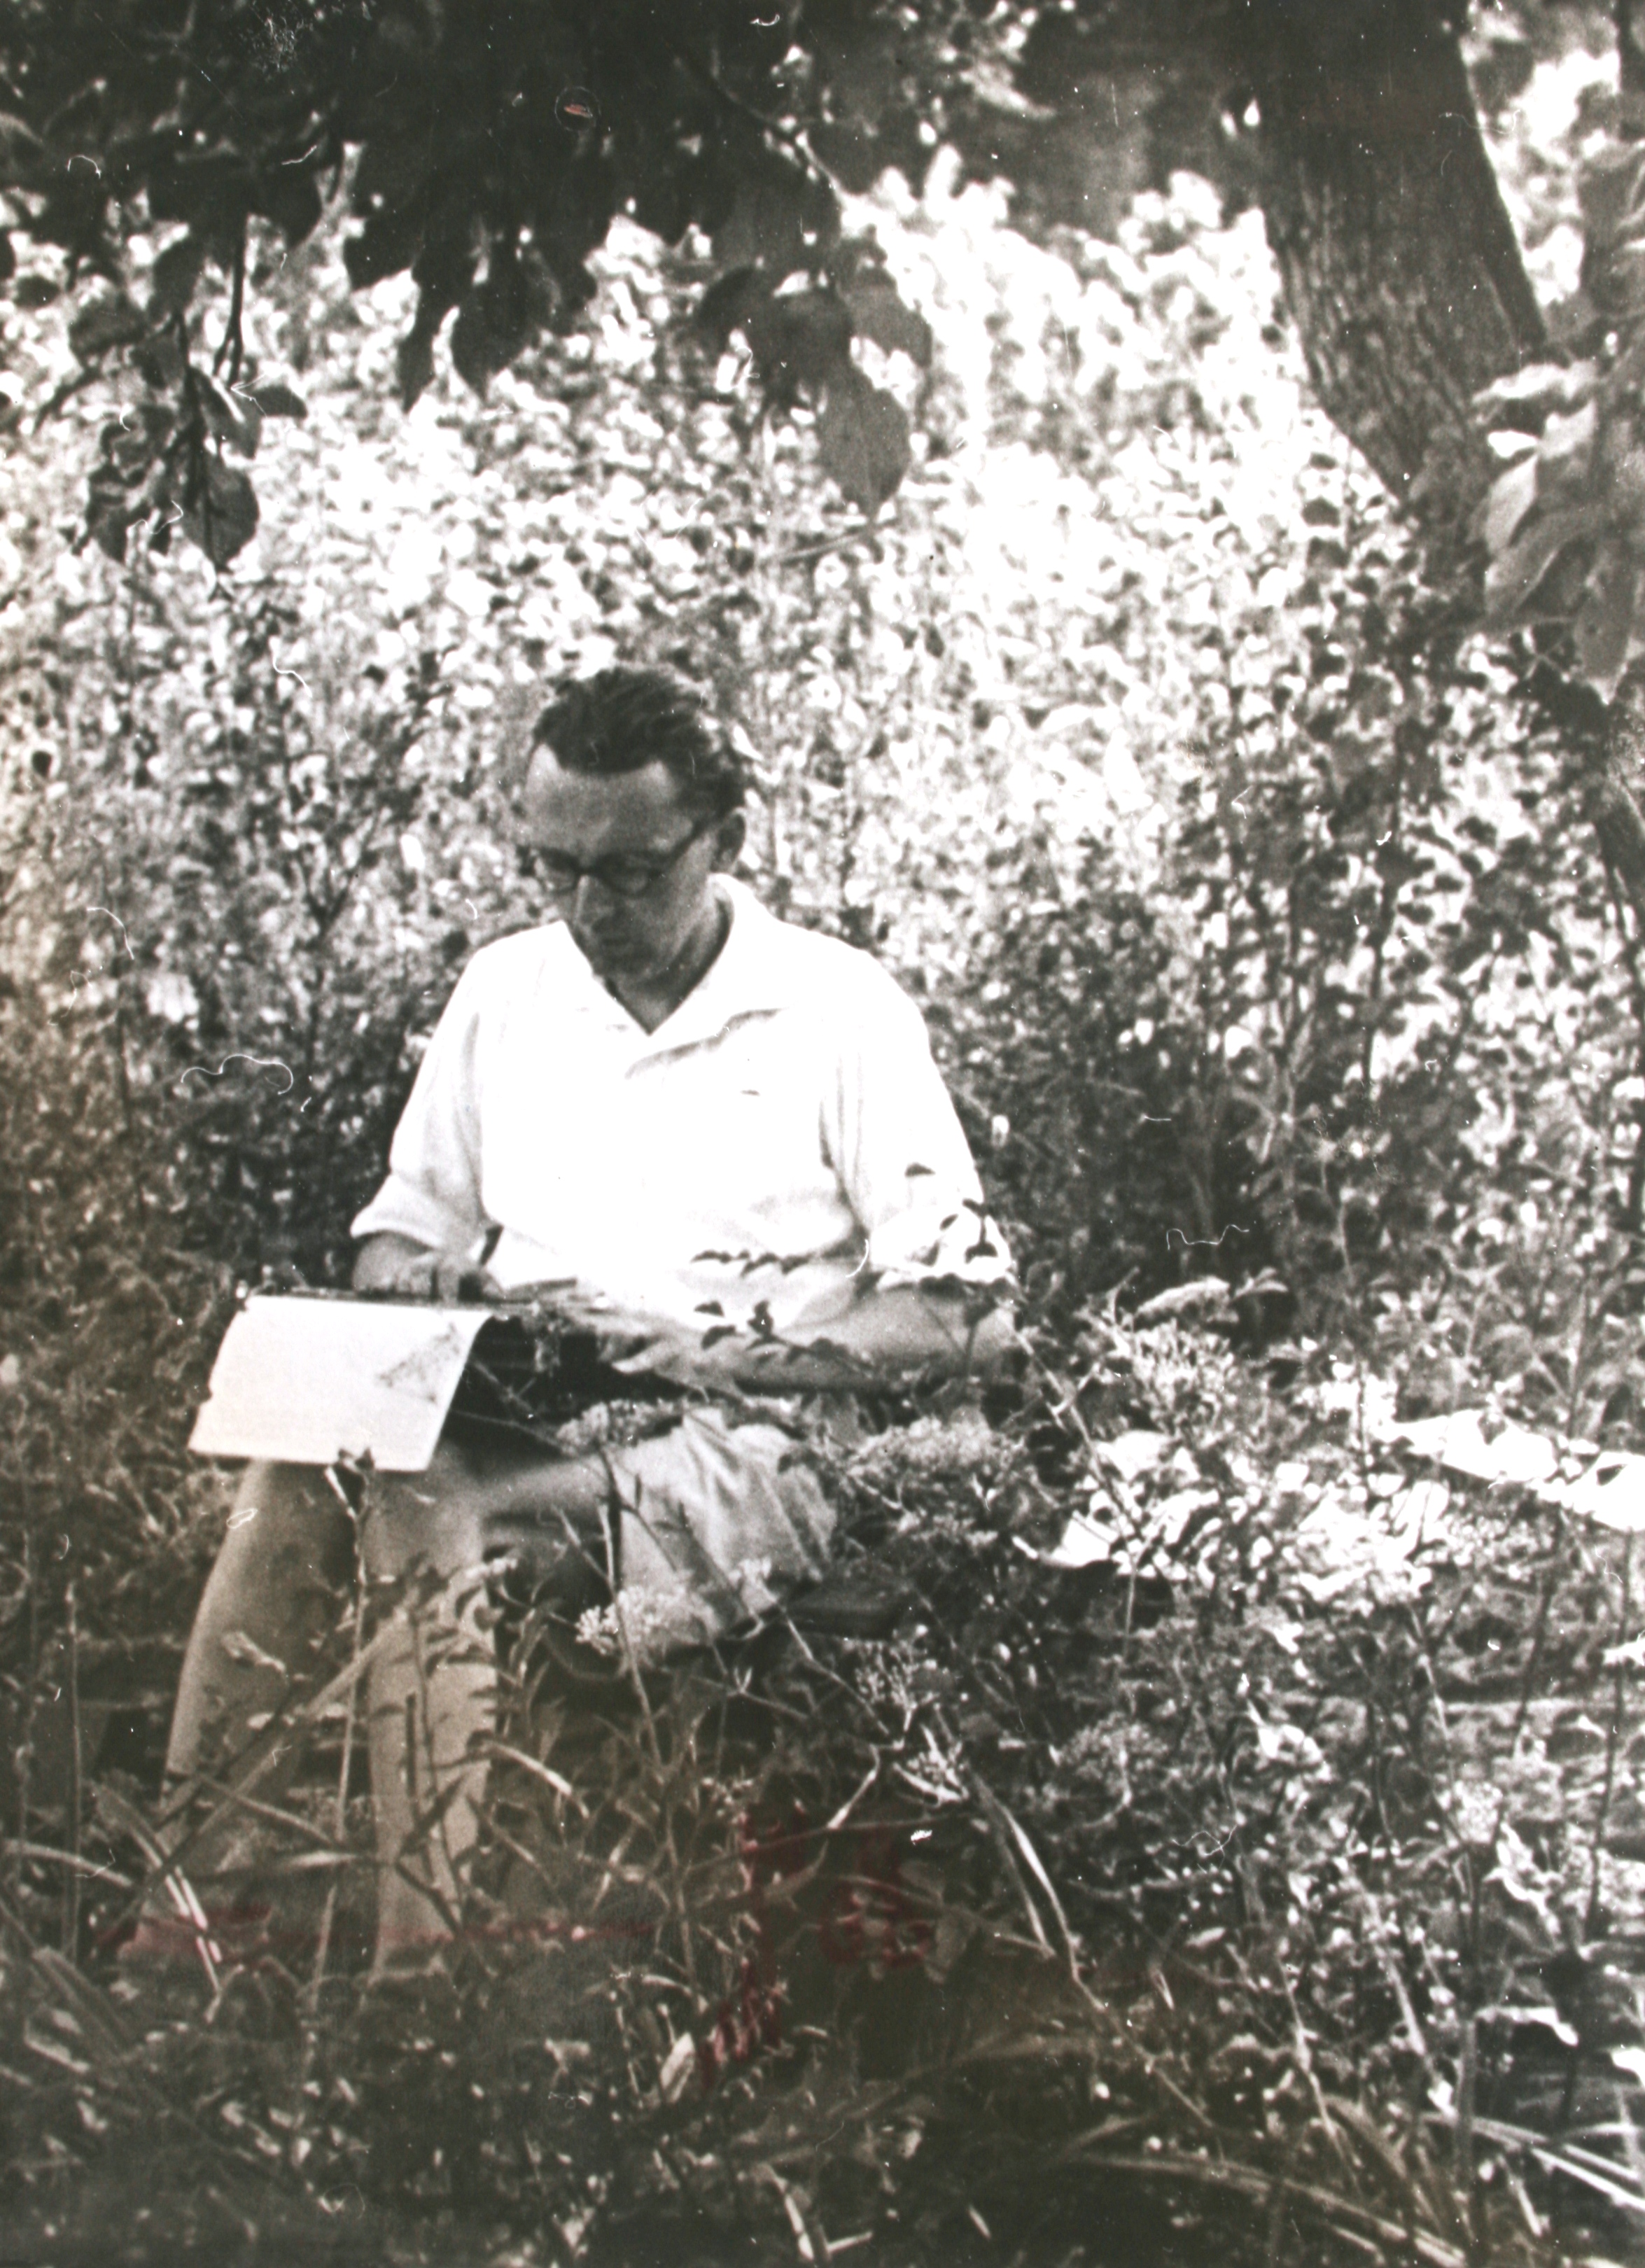 István Bibó typing in the garden of Leányfalu, second half of the 1940s